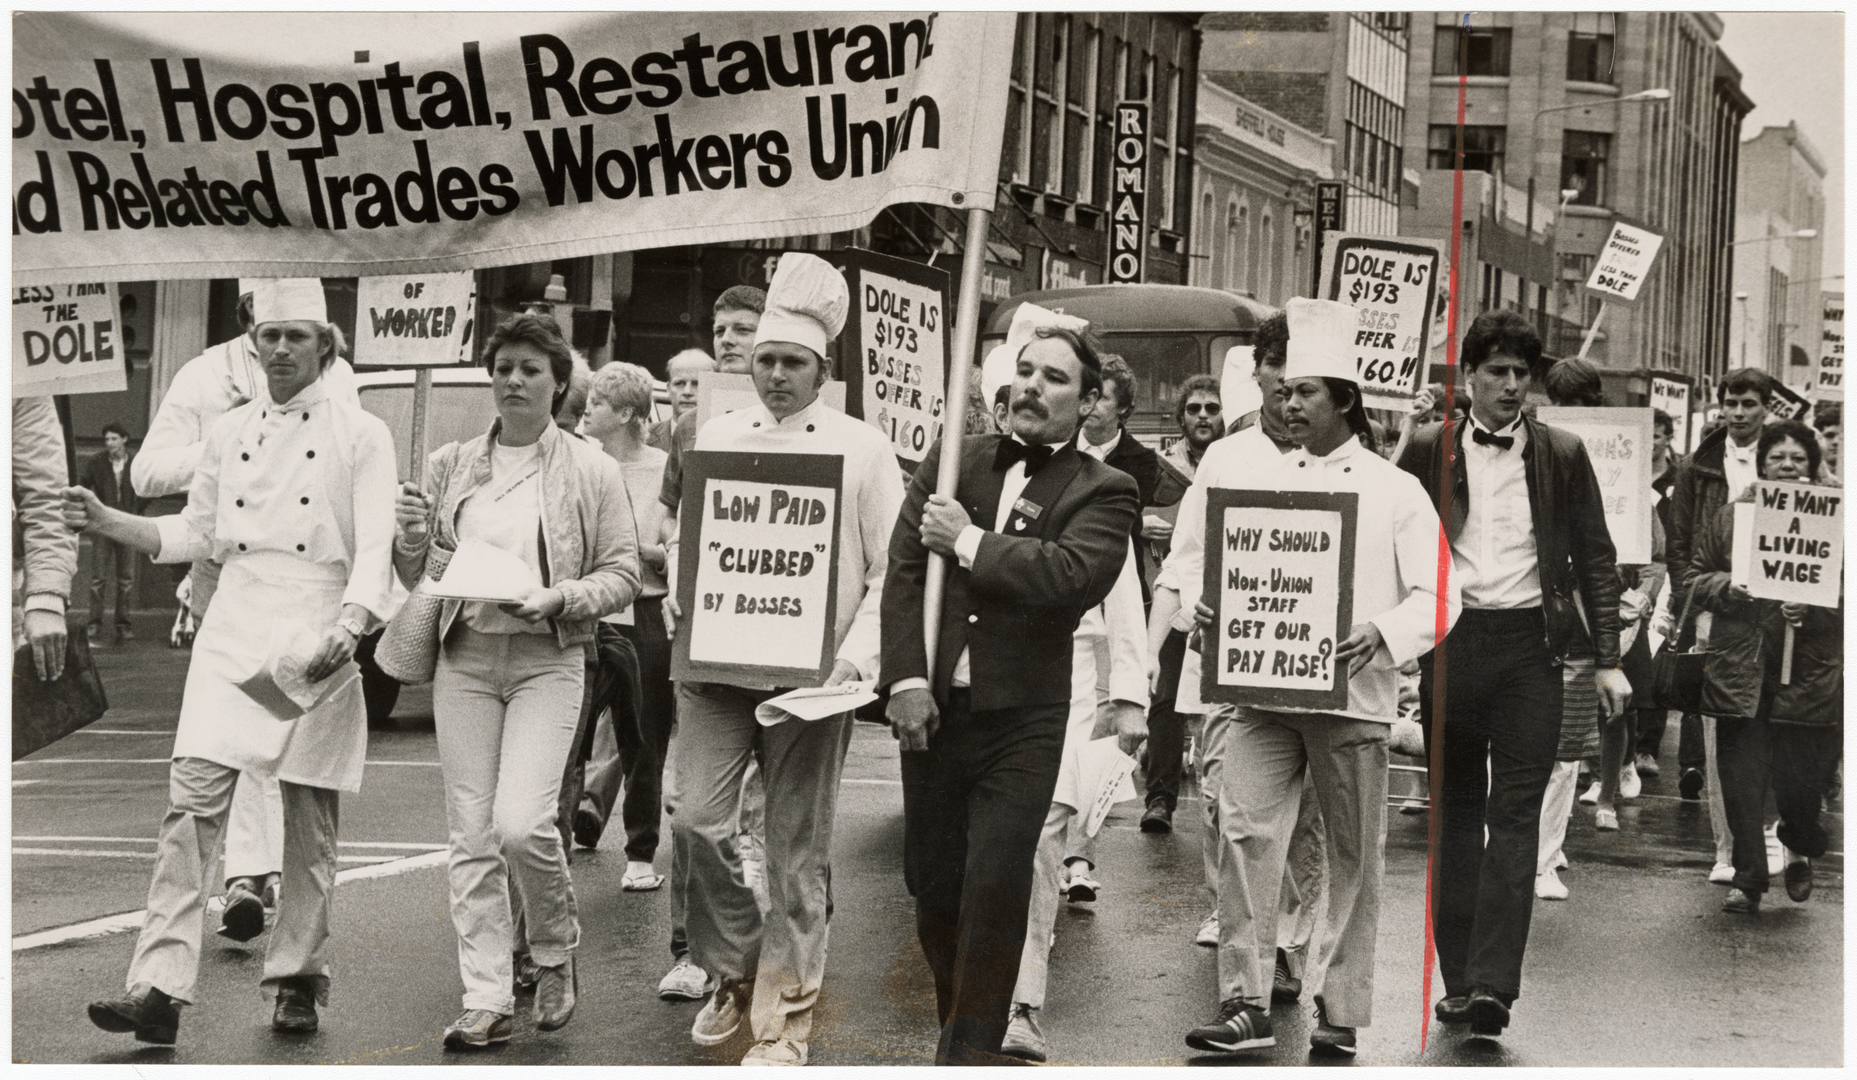 Hotel workers' protest